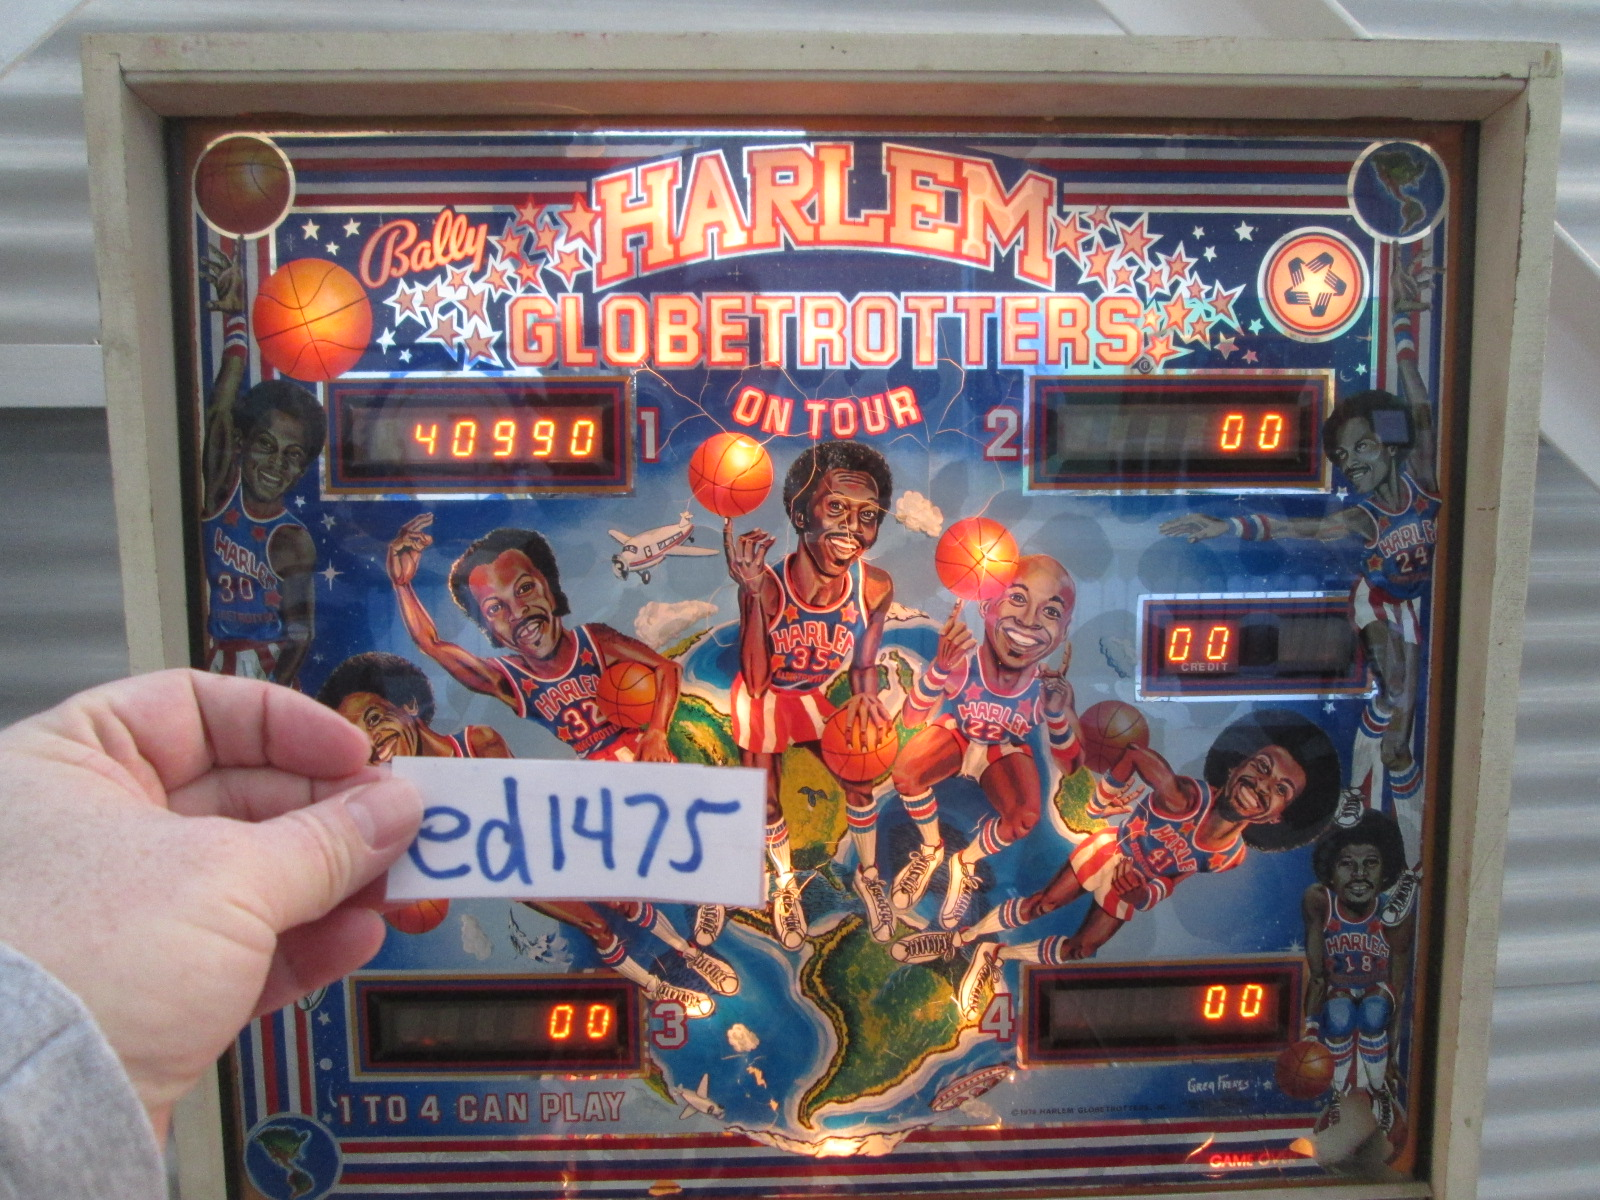 ed1475: Harlem Globetrotters On Tour (Pinball: 3 Balls) 40,990 points on 2017-01-15 16:15:11